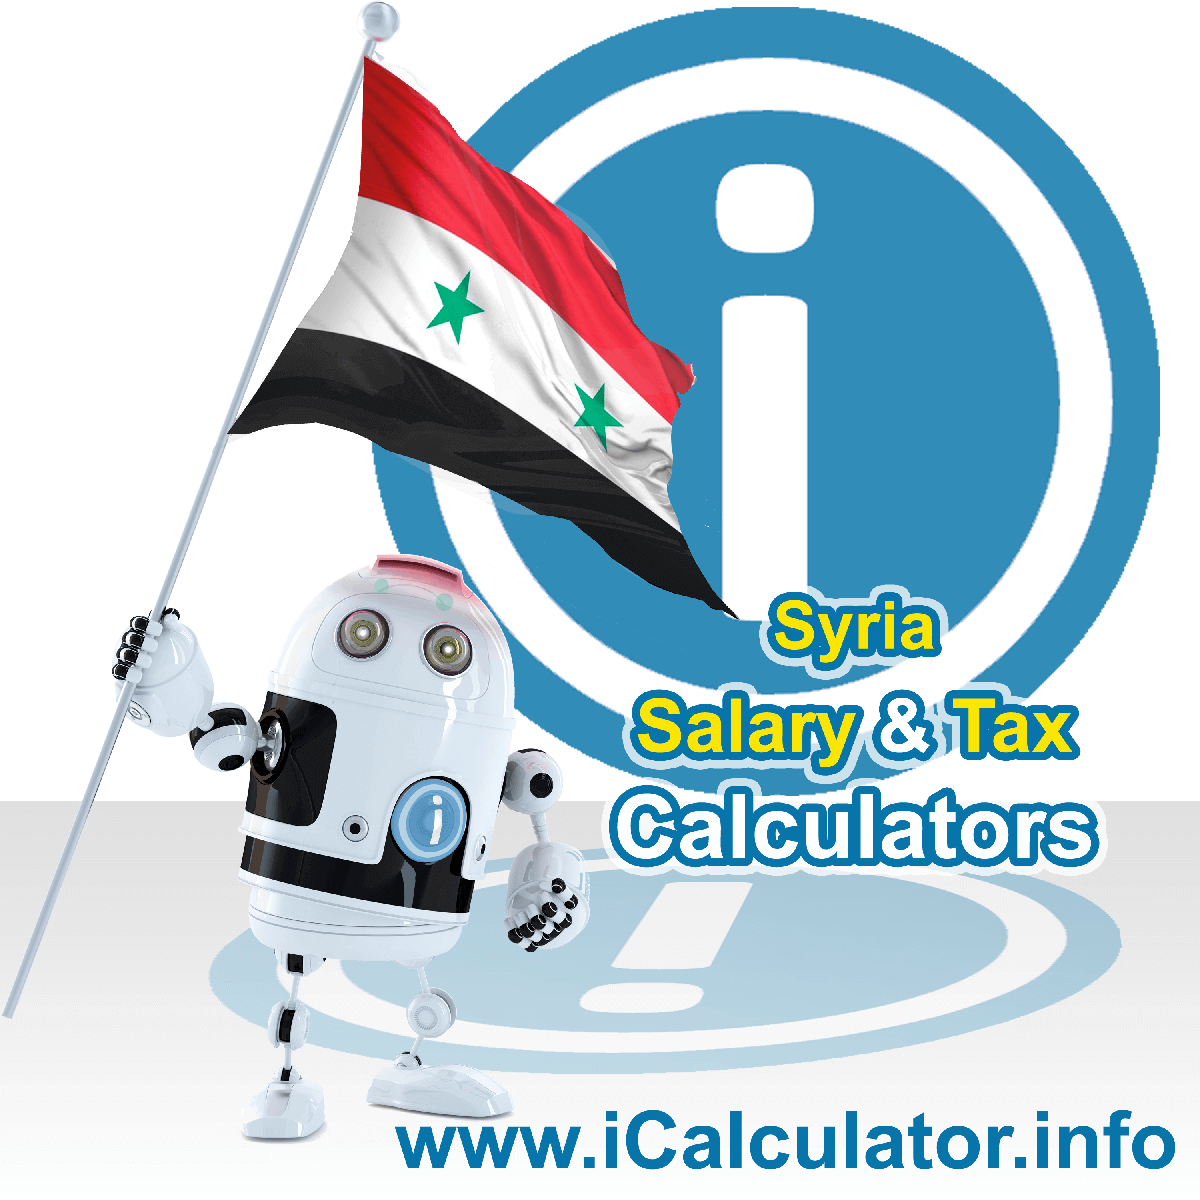 Syria Wage Calculator. This image shows the Syria flag and information relating to the tax formula for the Syria Tax Calculator